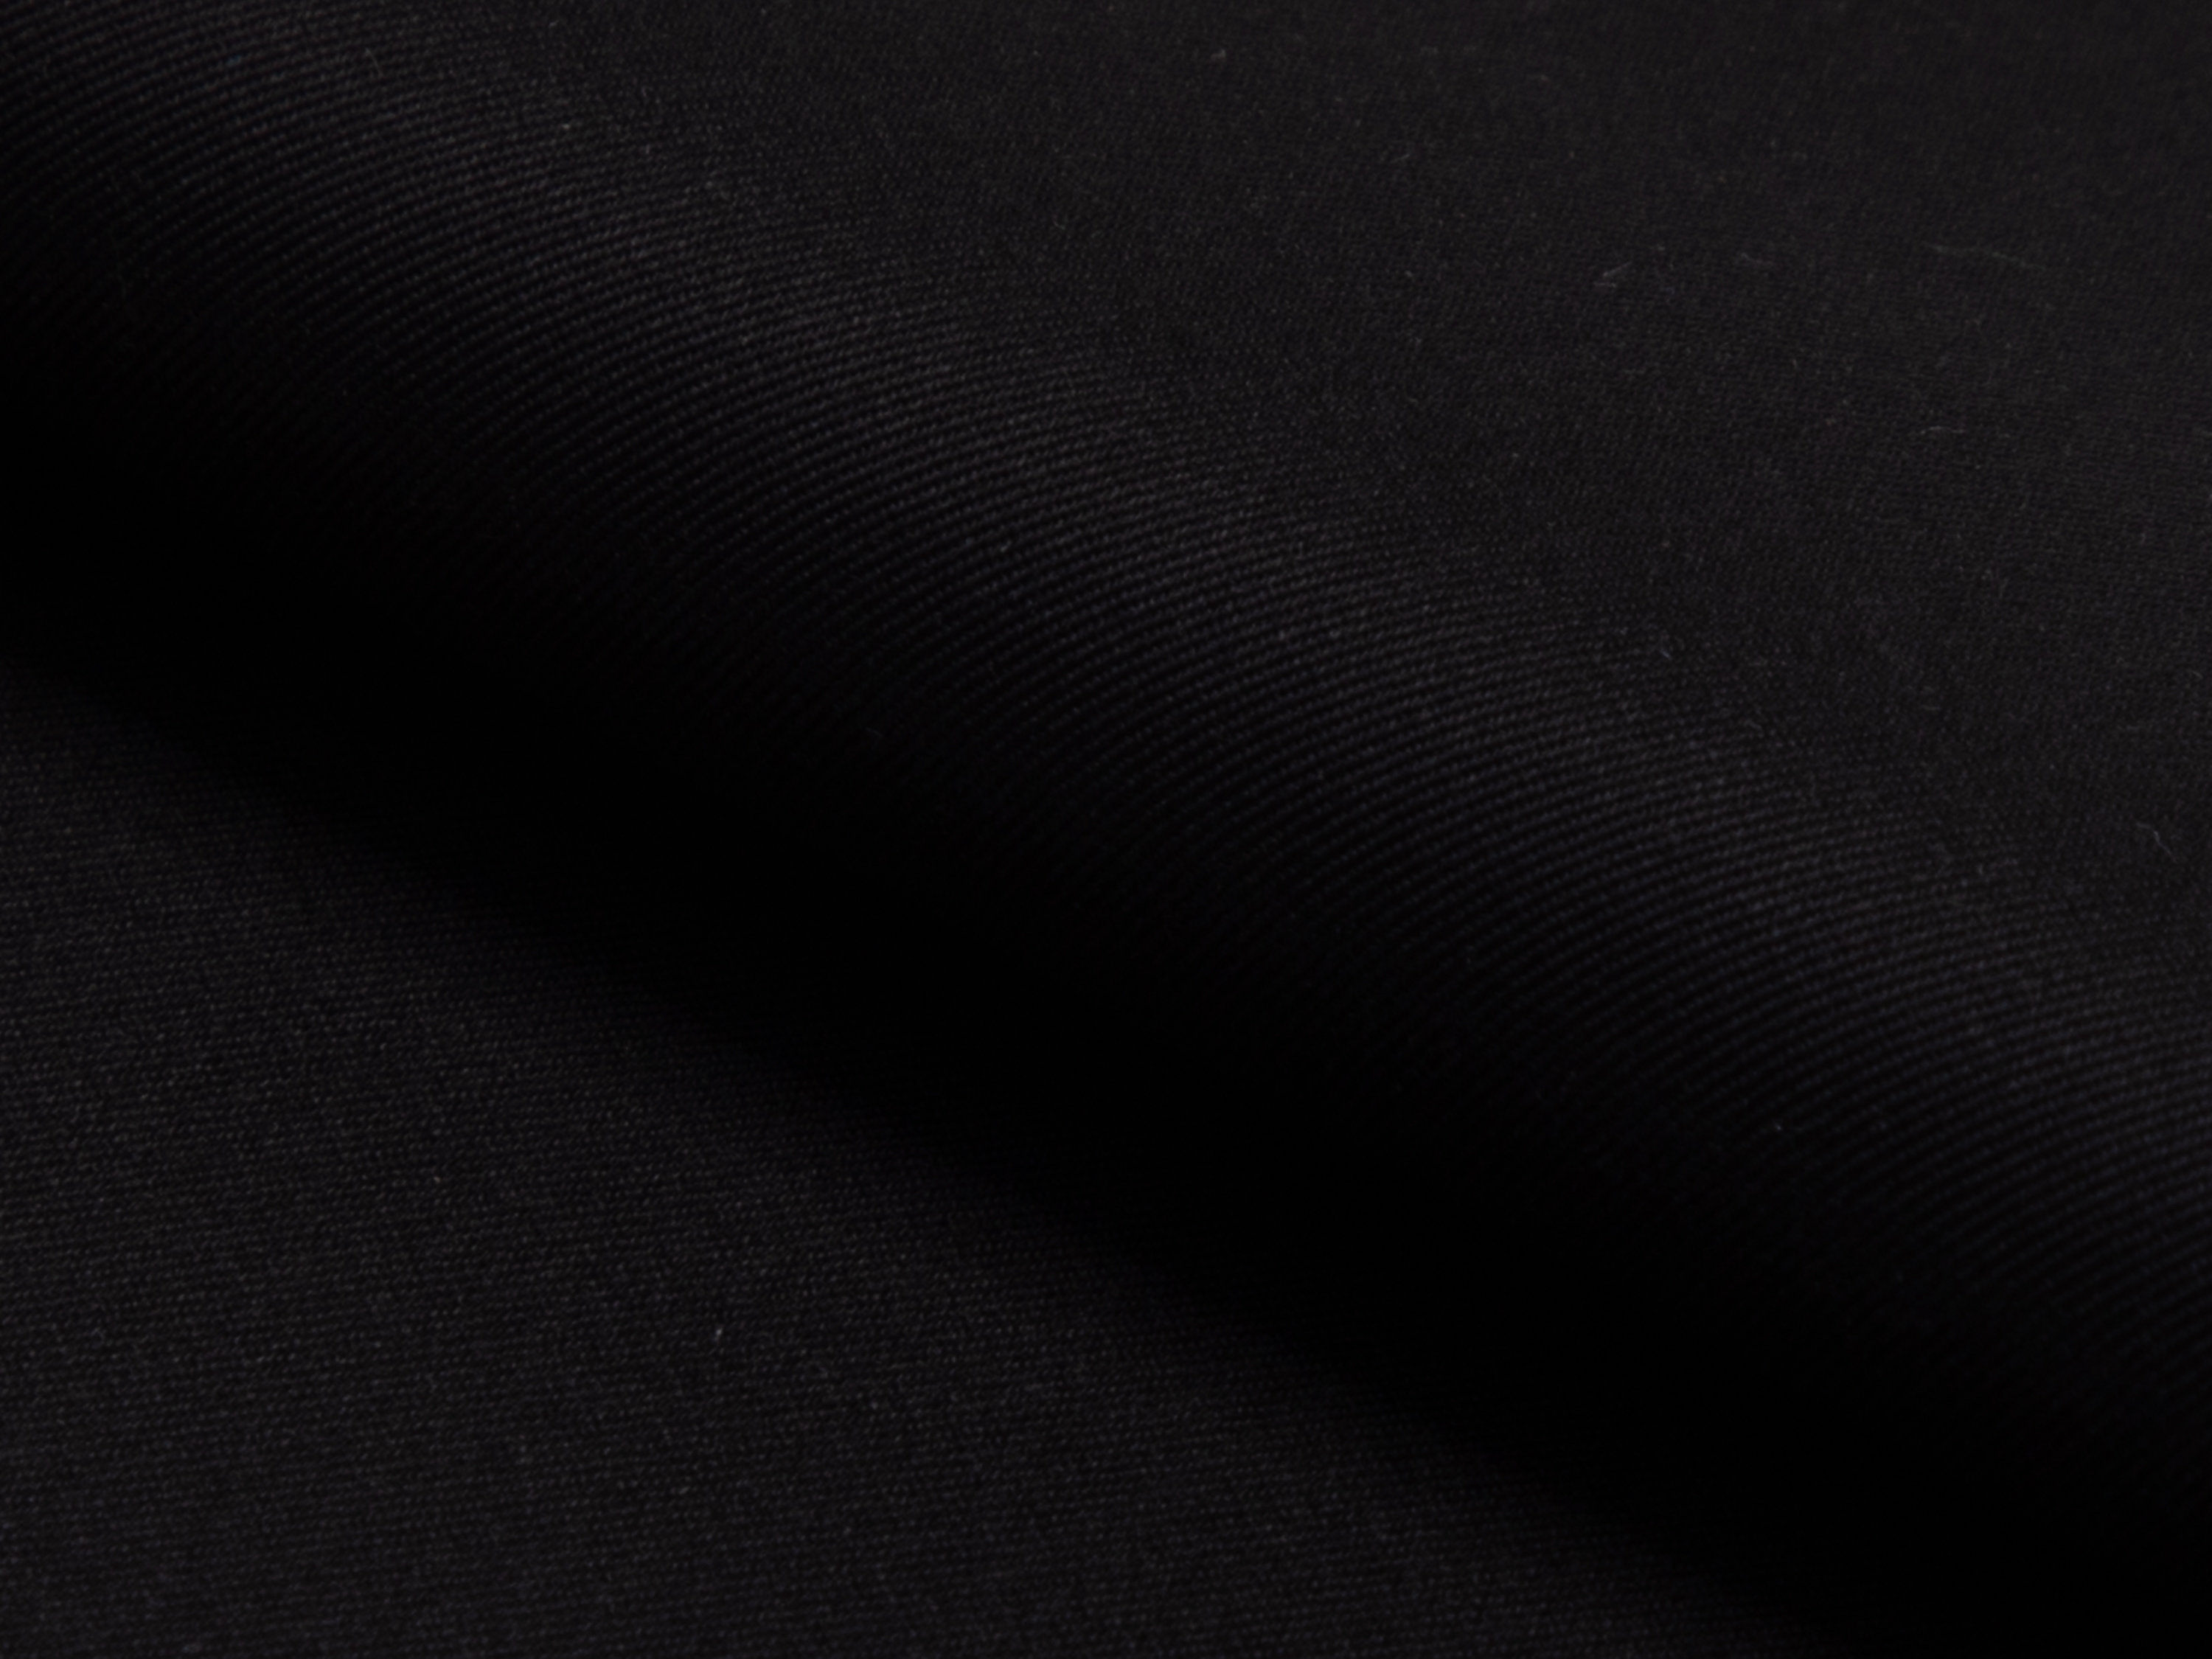 Buy tailor made shirts online - MAYFAIR (NEW) - Twill Black